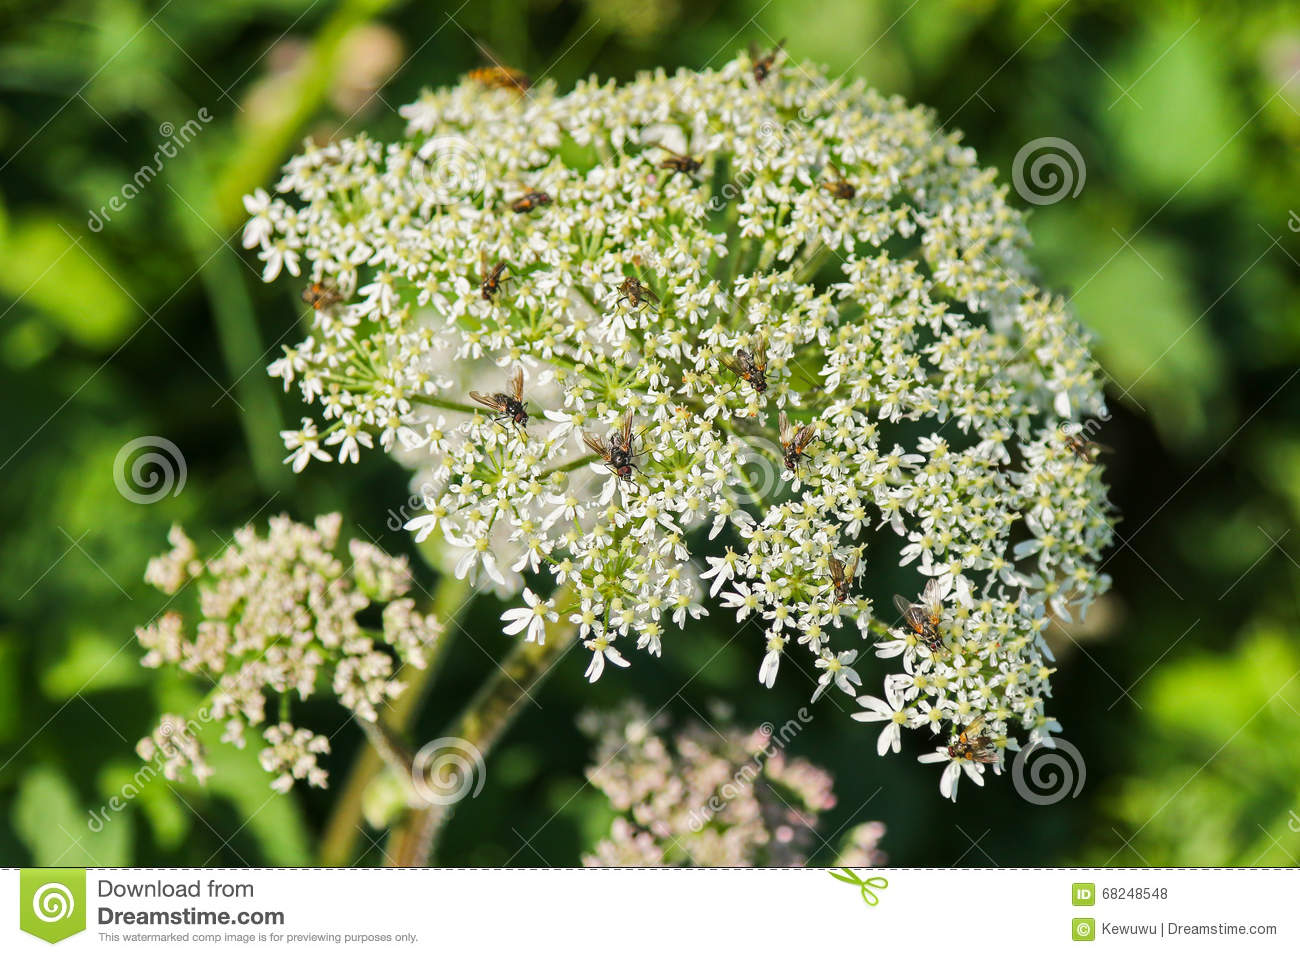 Insects On Cow Parsley Flower (Anthriscus Sylvestris) Stock Photo.